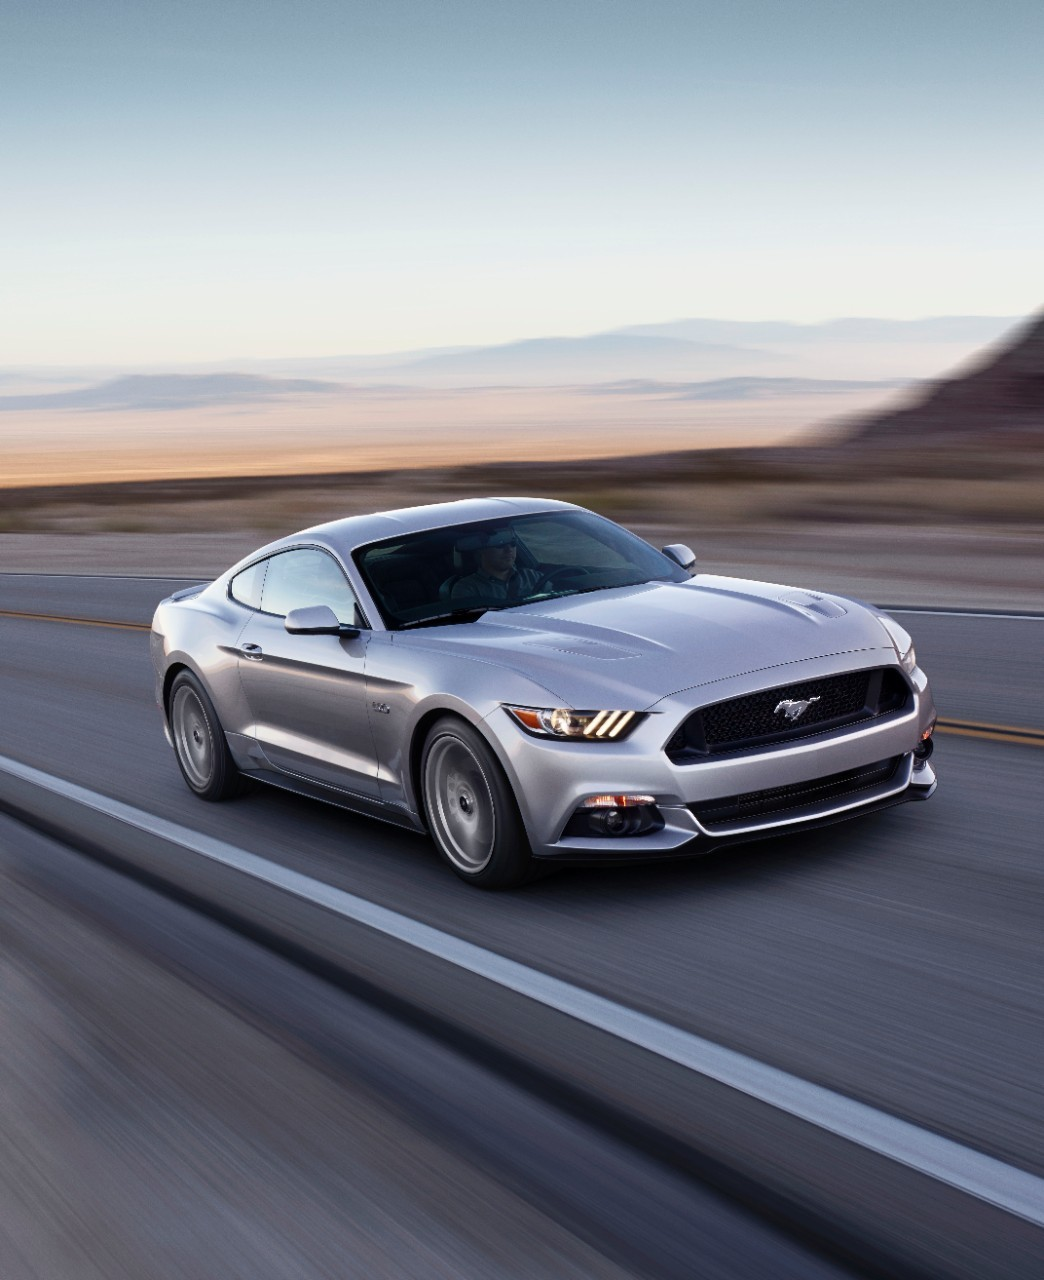 2015-ford-mustang-gt-09-1